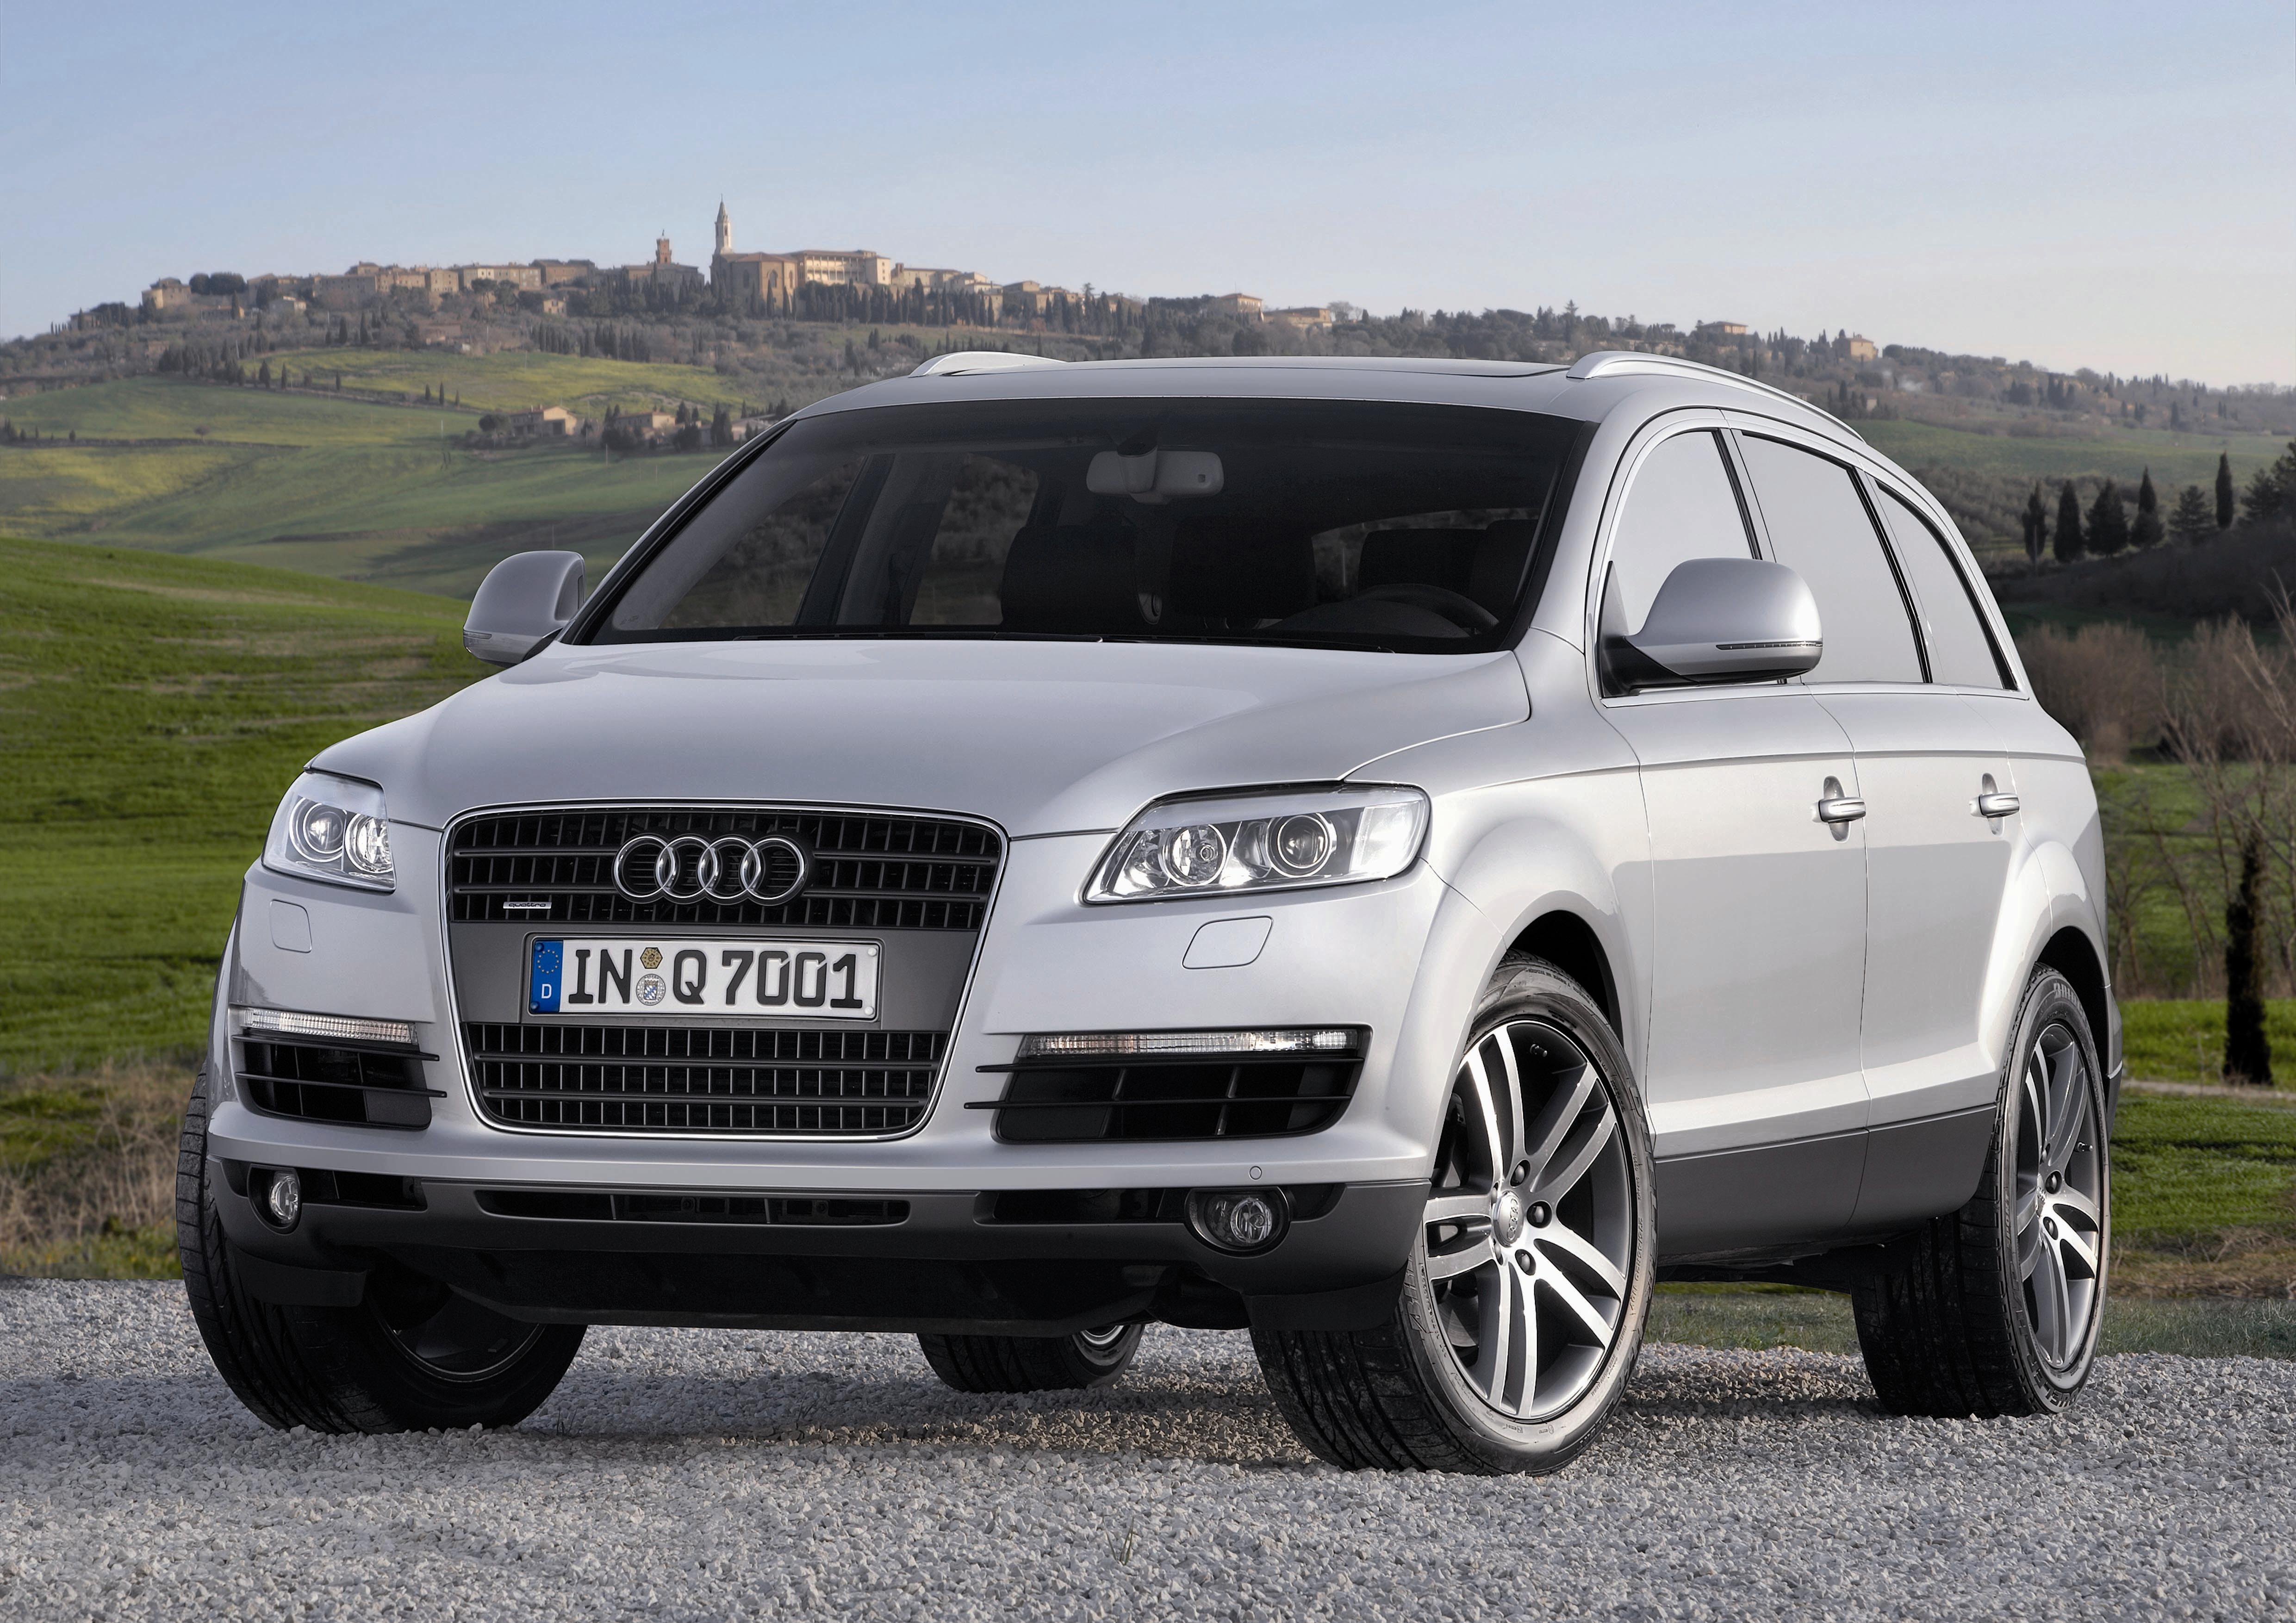 2007 audi q7 4 2 tdi gallery 166666 top speed. Black Bedroom Furniture Sets. Home Design Ideas